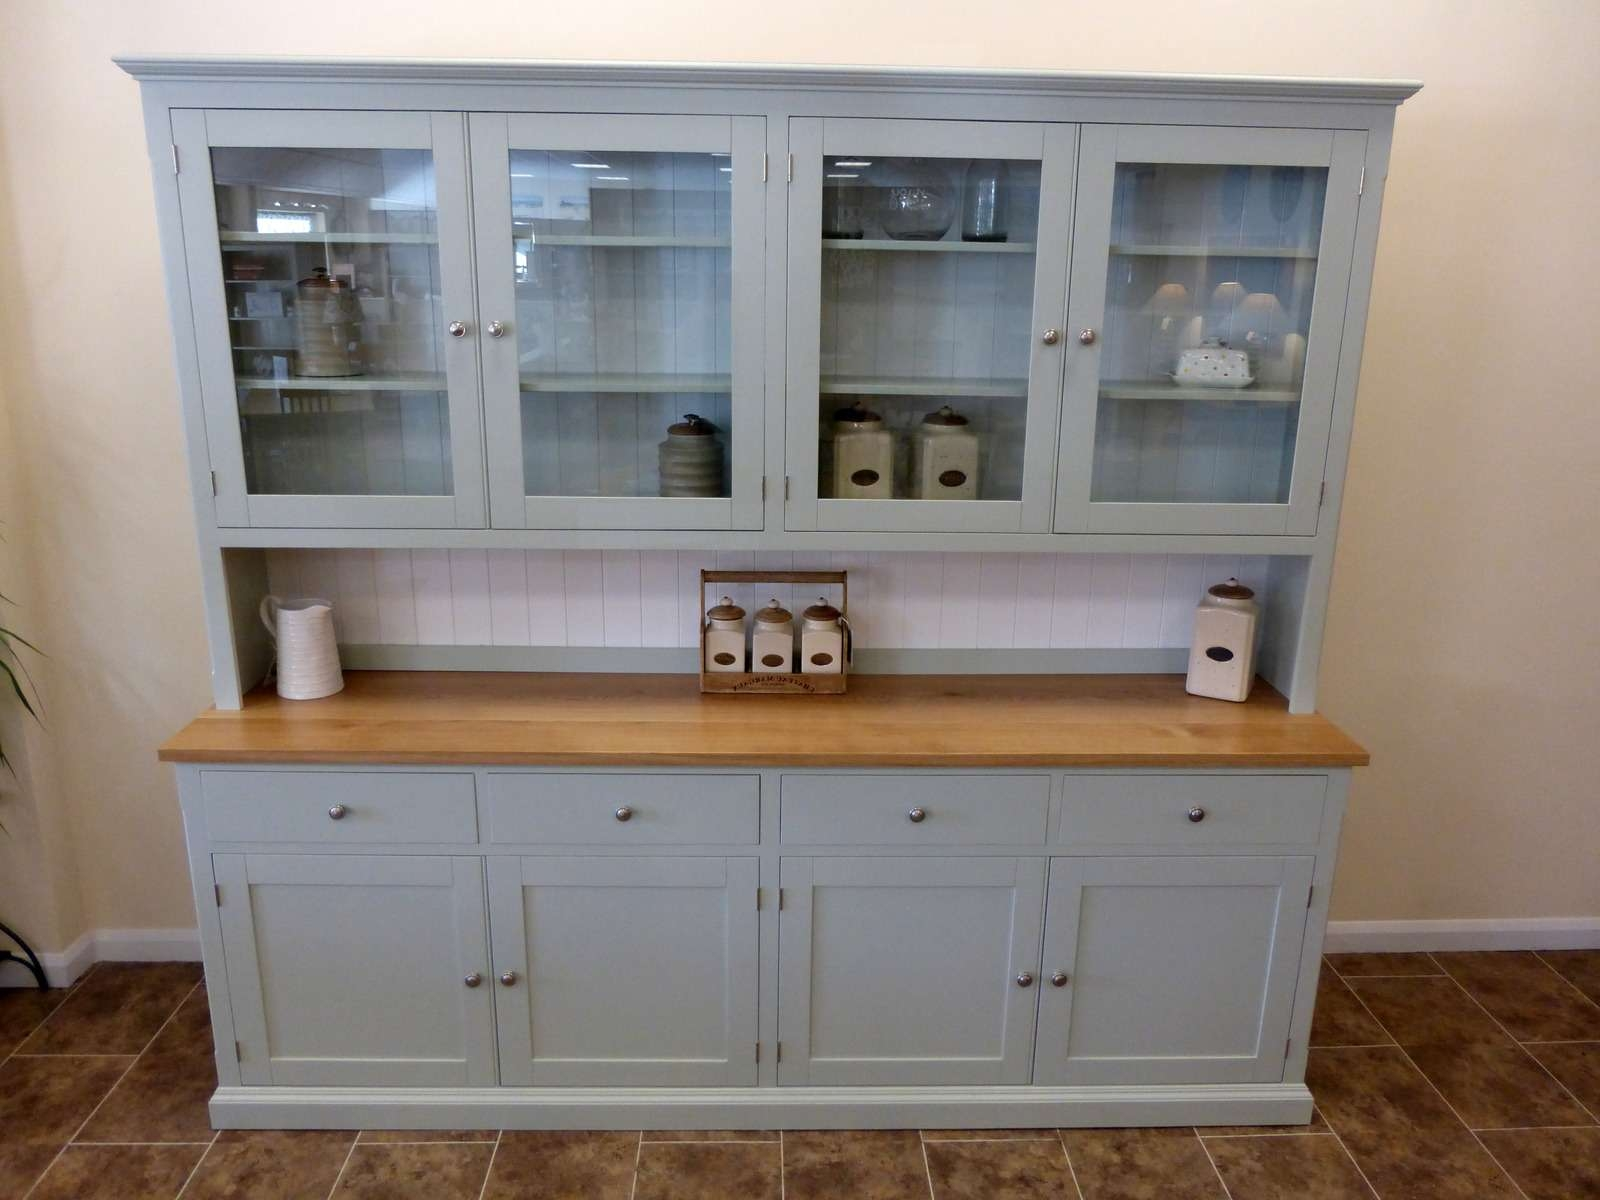 Painted 8' Elegant Half Glazed Dresser – Solid Wood & Painted Made With Kitchen Dressers And Sideboards (View 11 of 20)